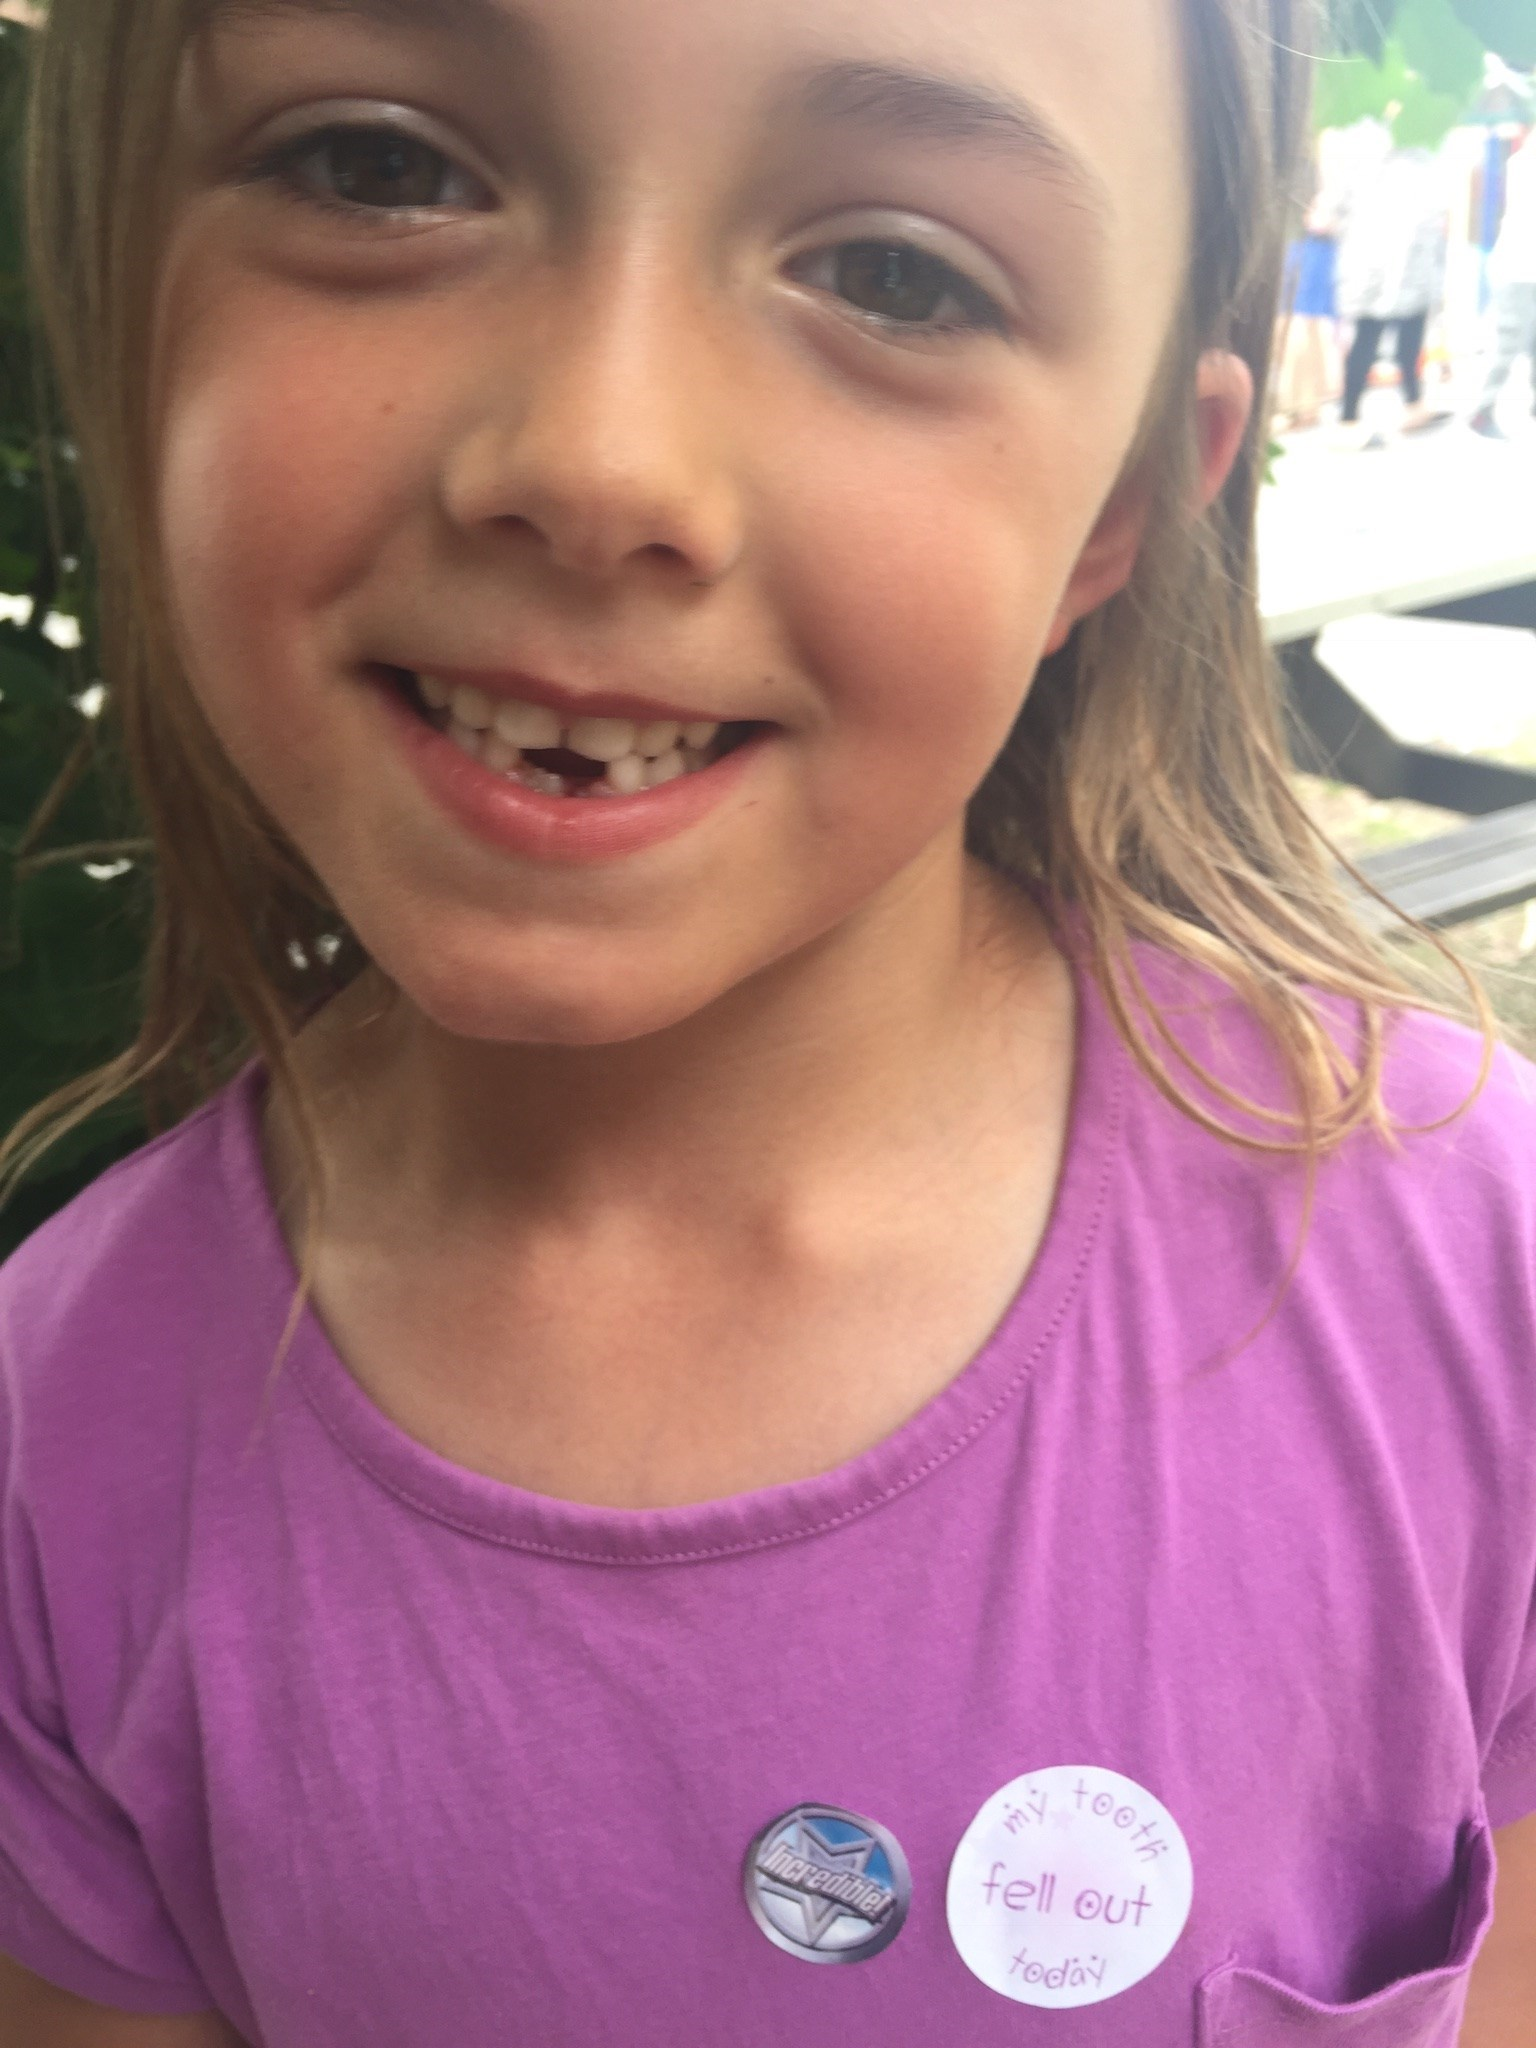 Lost another tooth today daddy xxxx